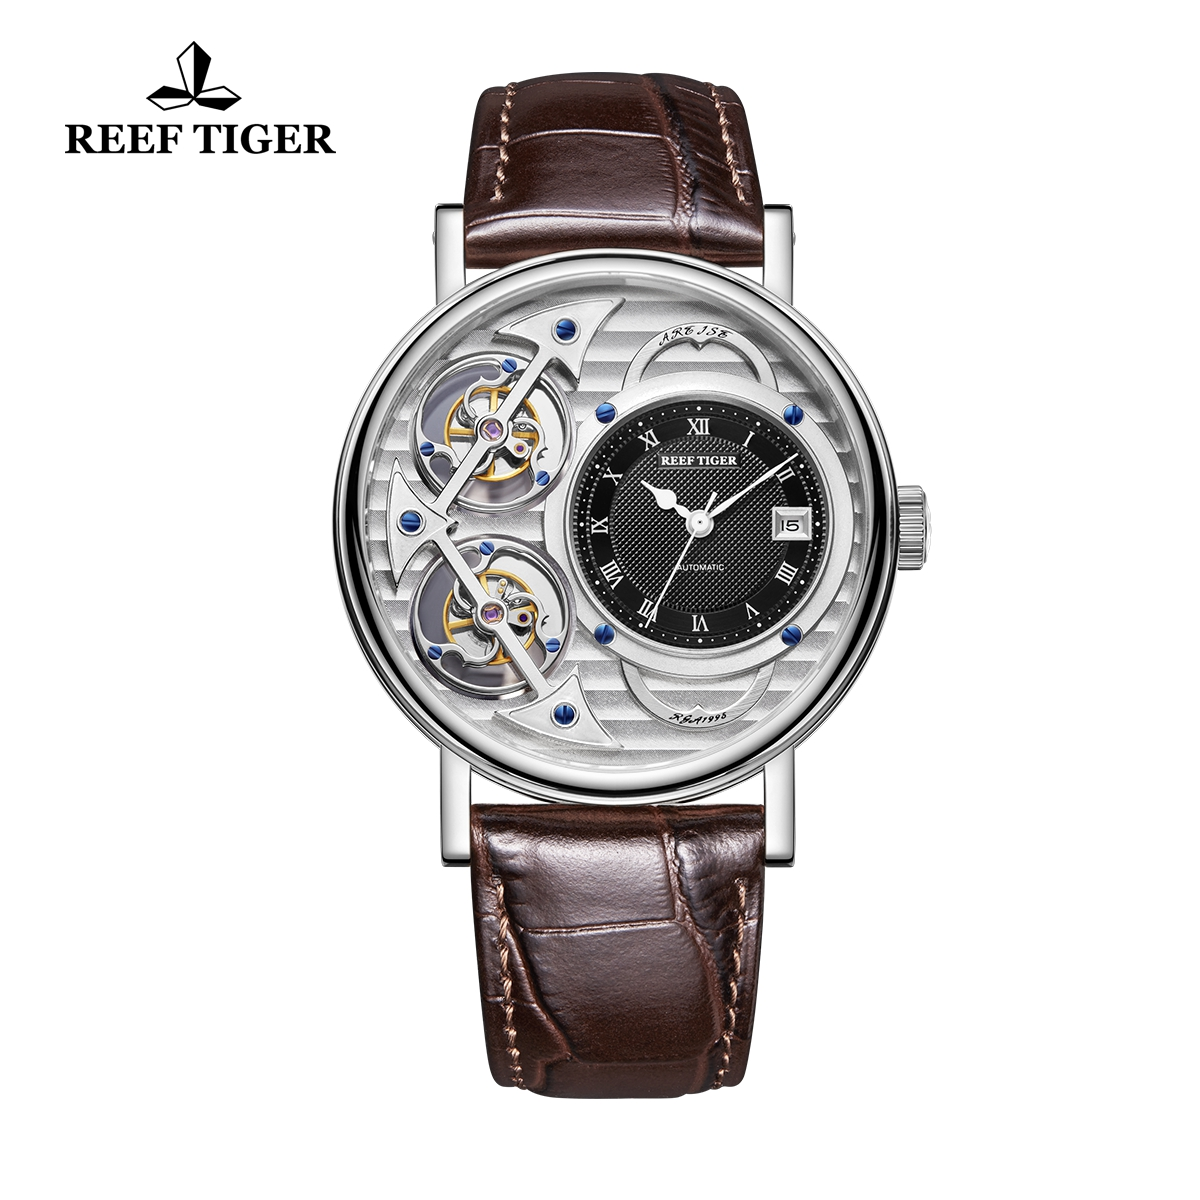 Reef Tiger Artist Magician Fashion Men's Steel Watches Leather Strap Automatic Watch With Date RGA1995-YSSB